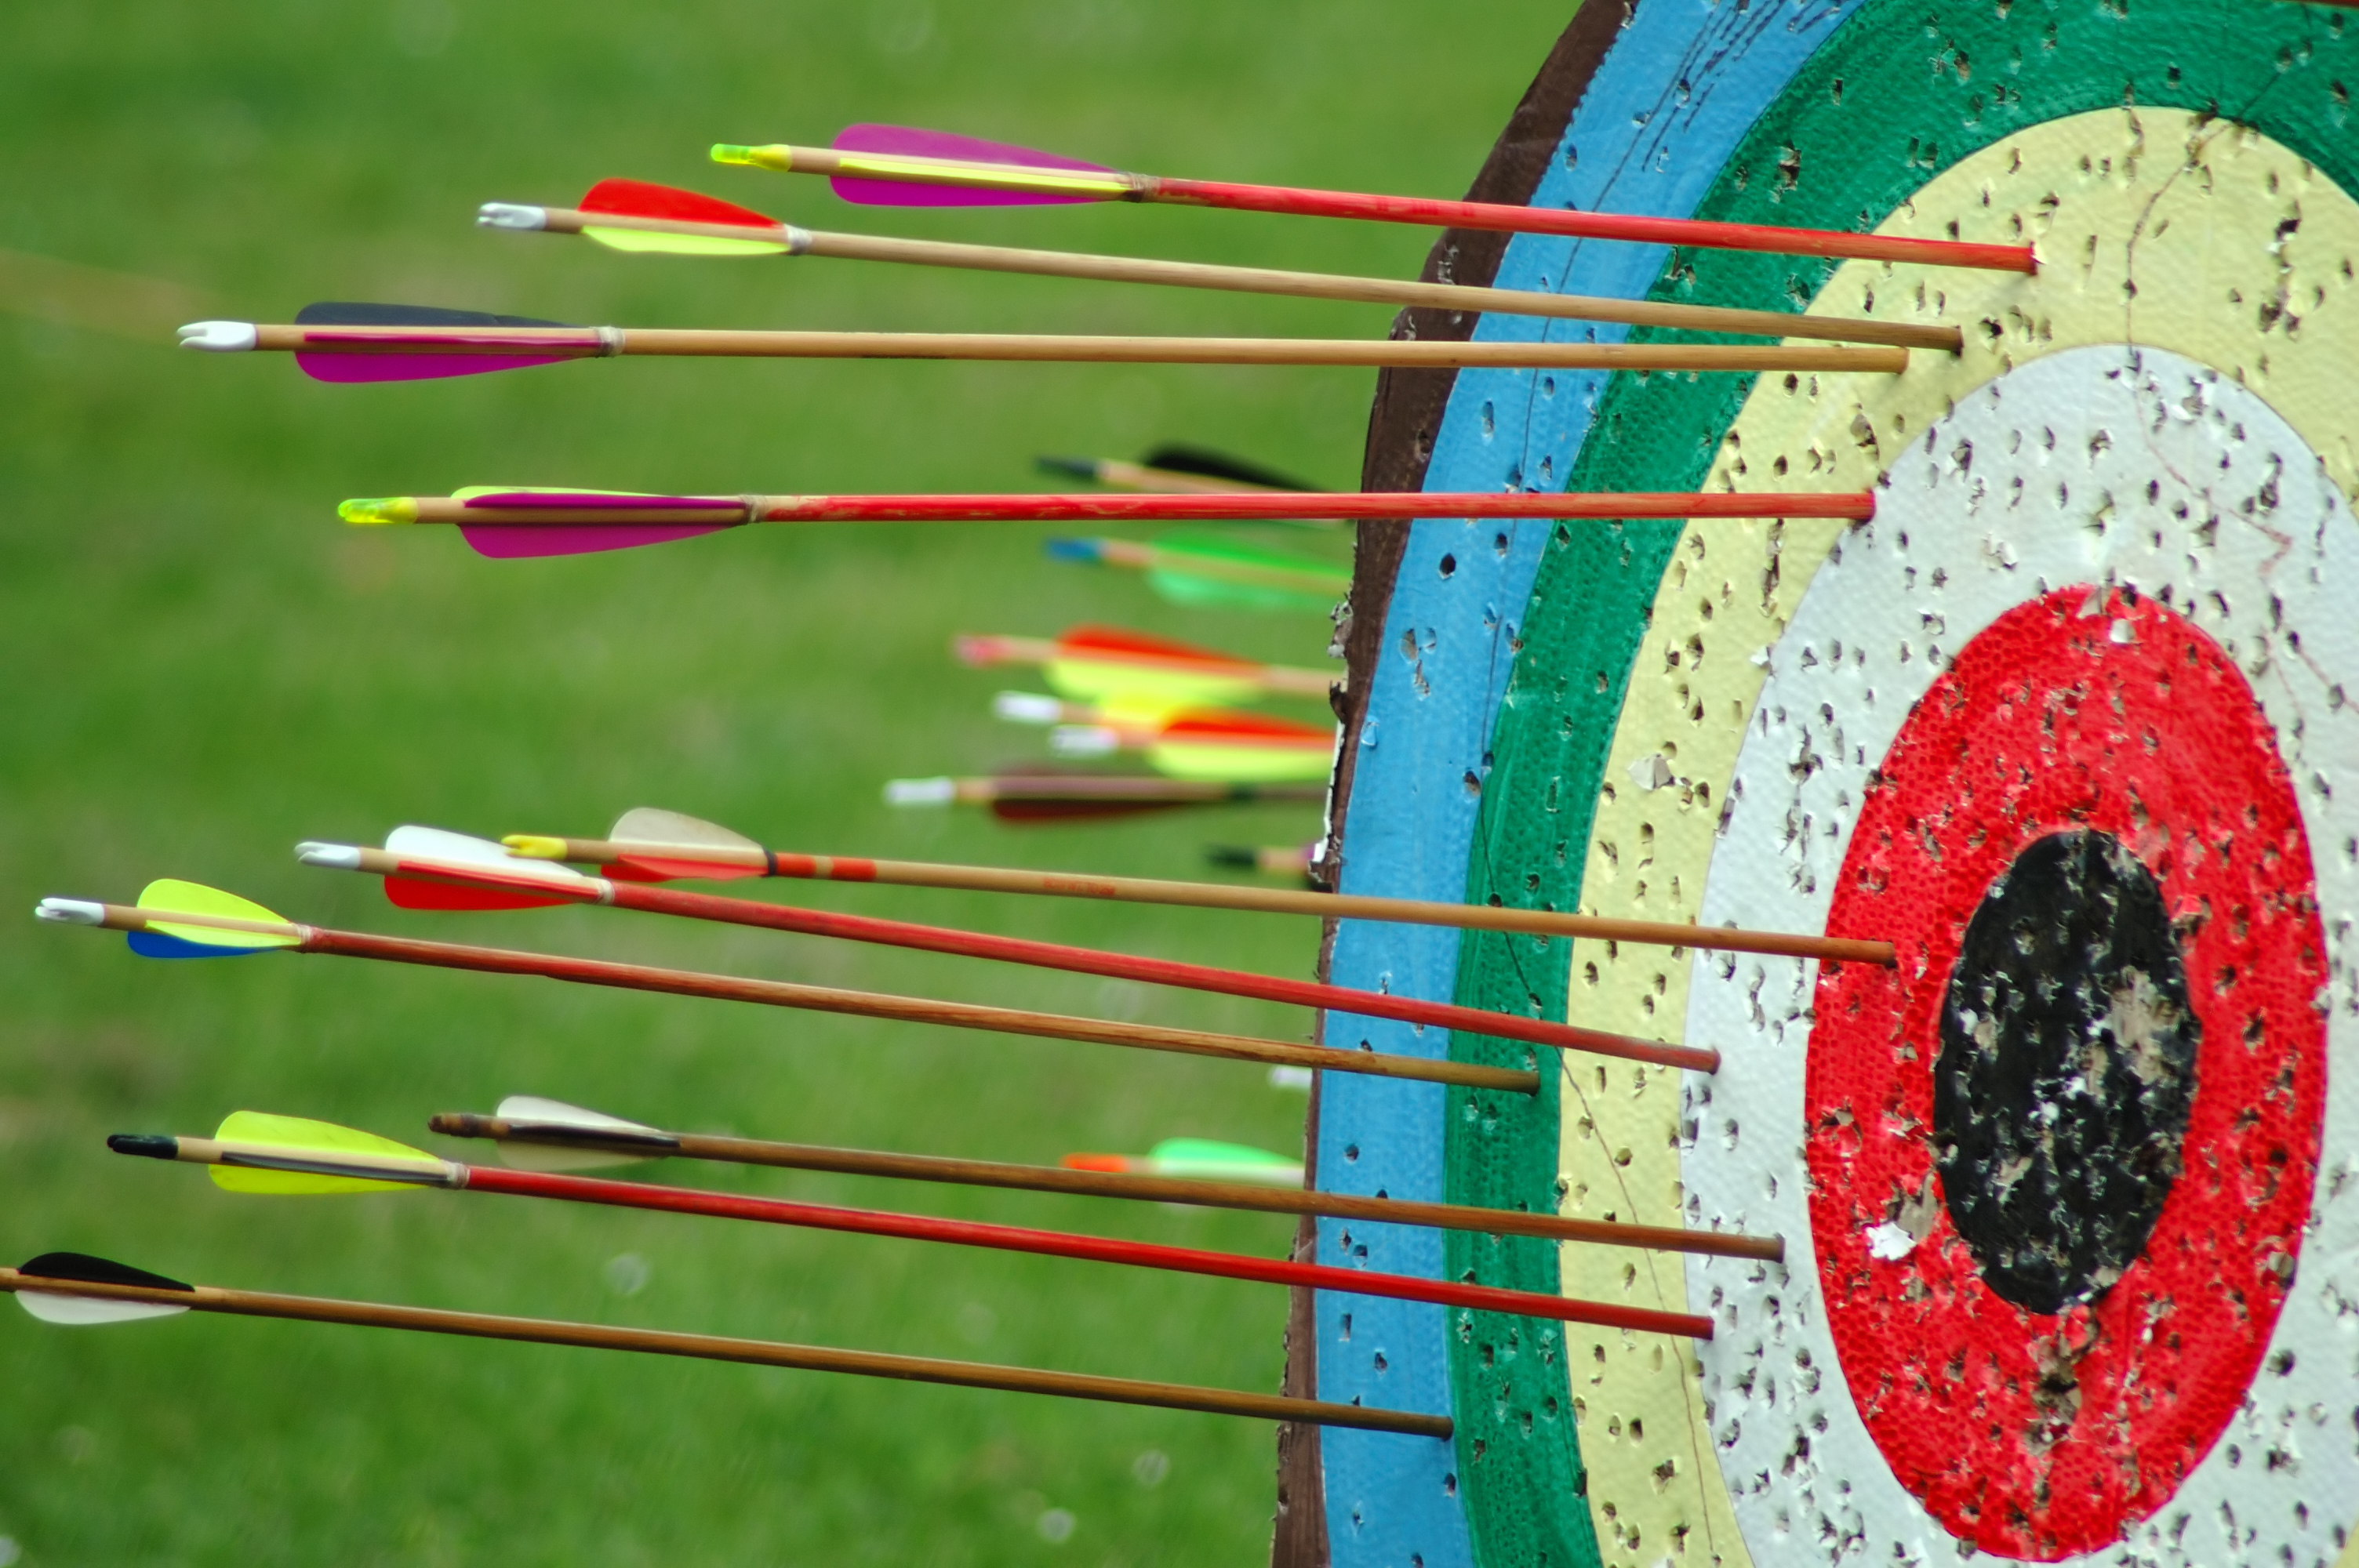 Learn more about archery safety tips